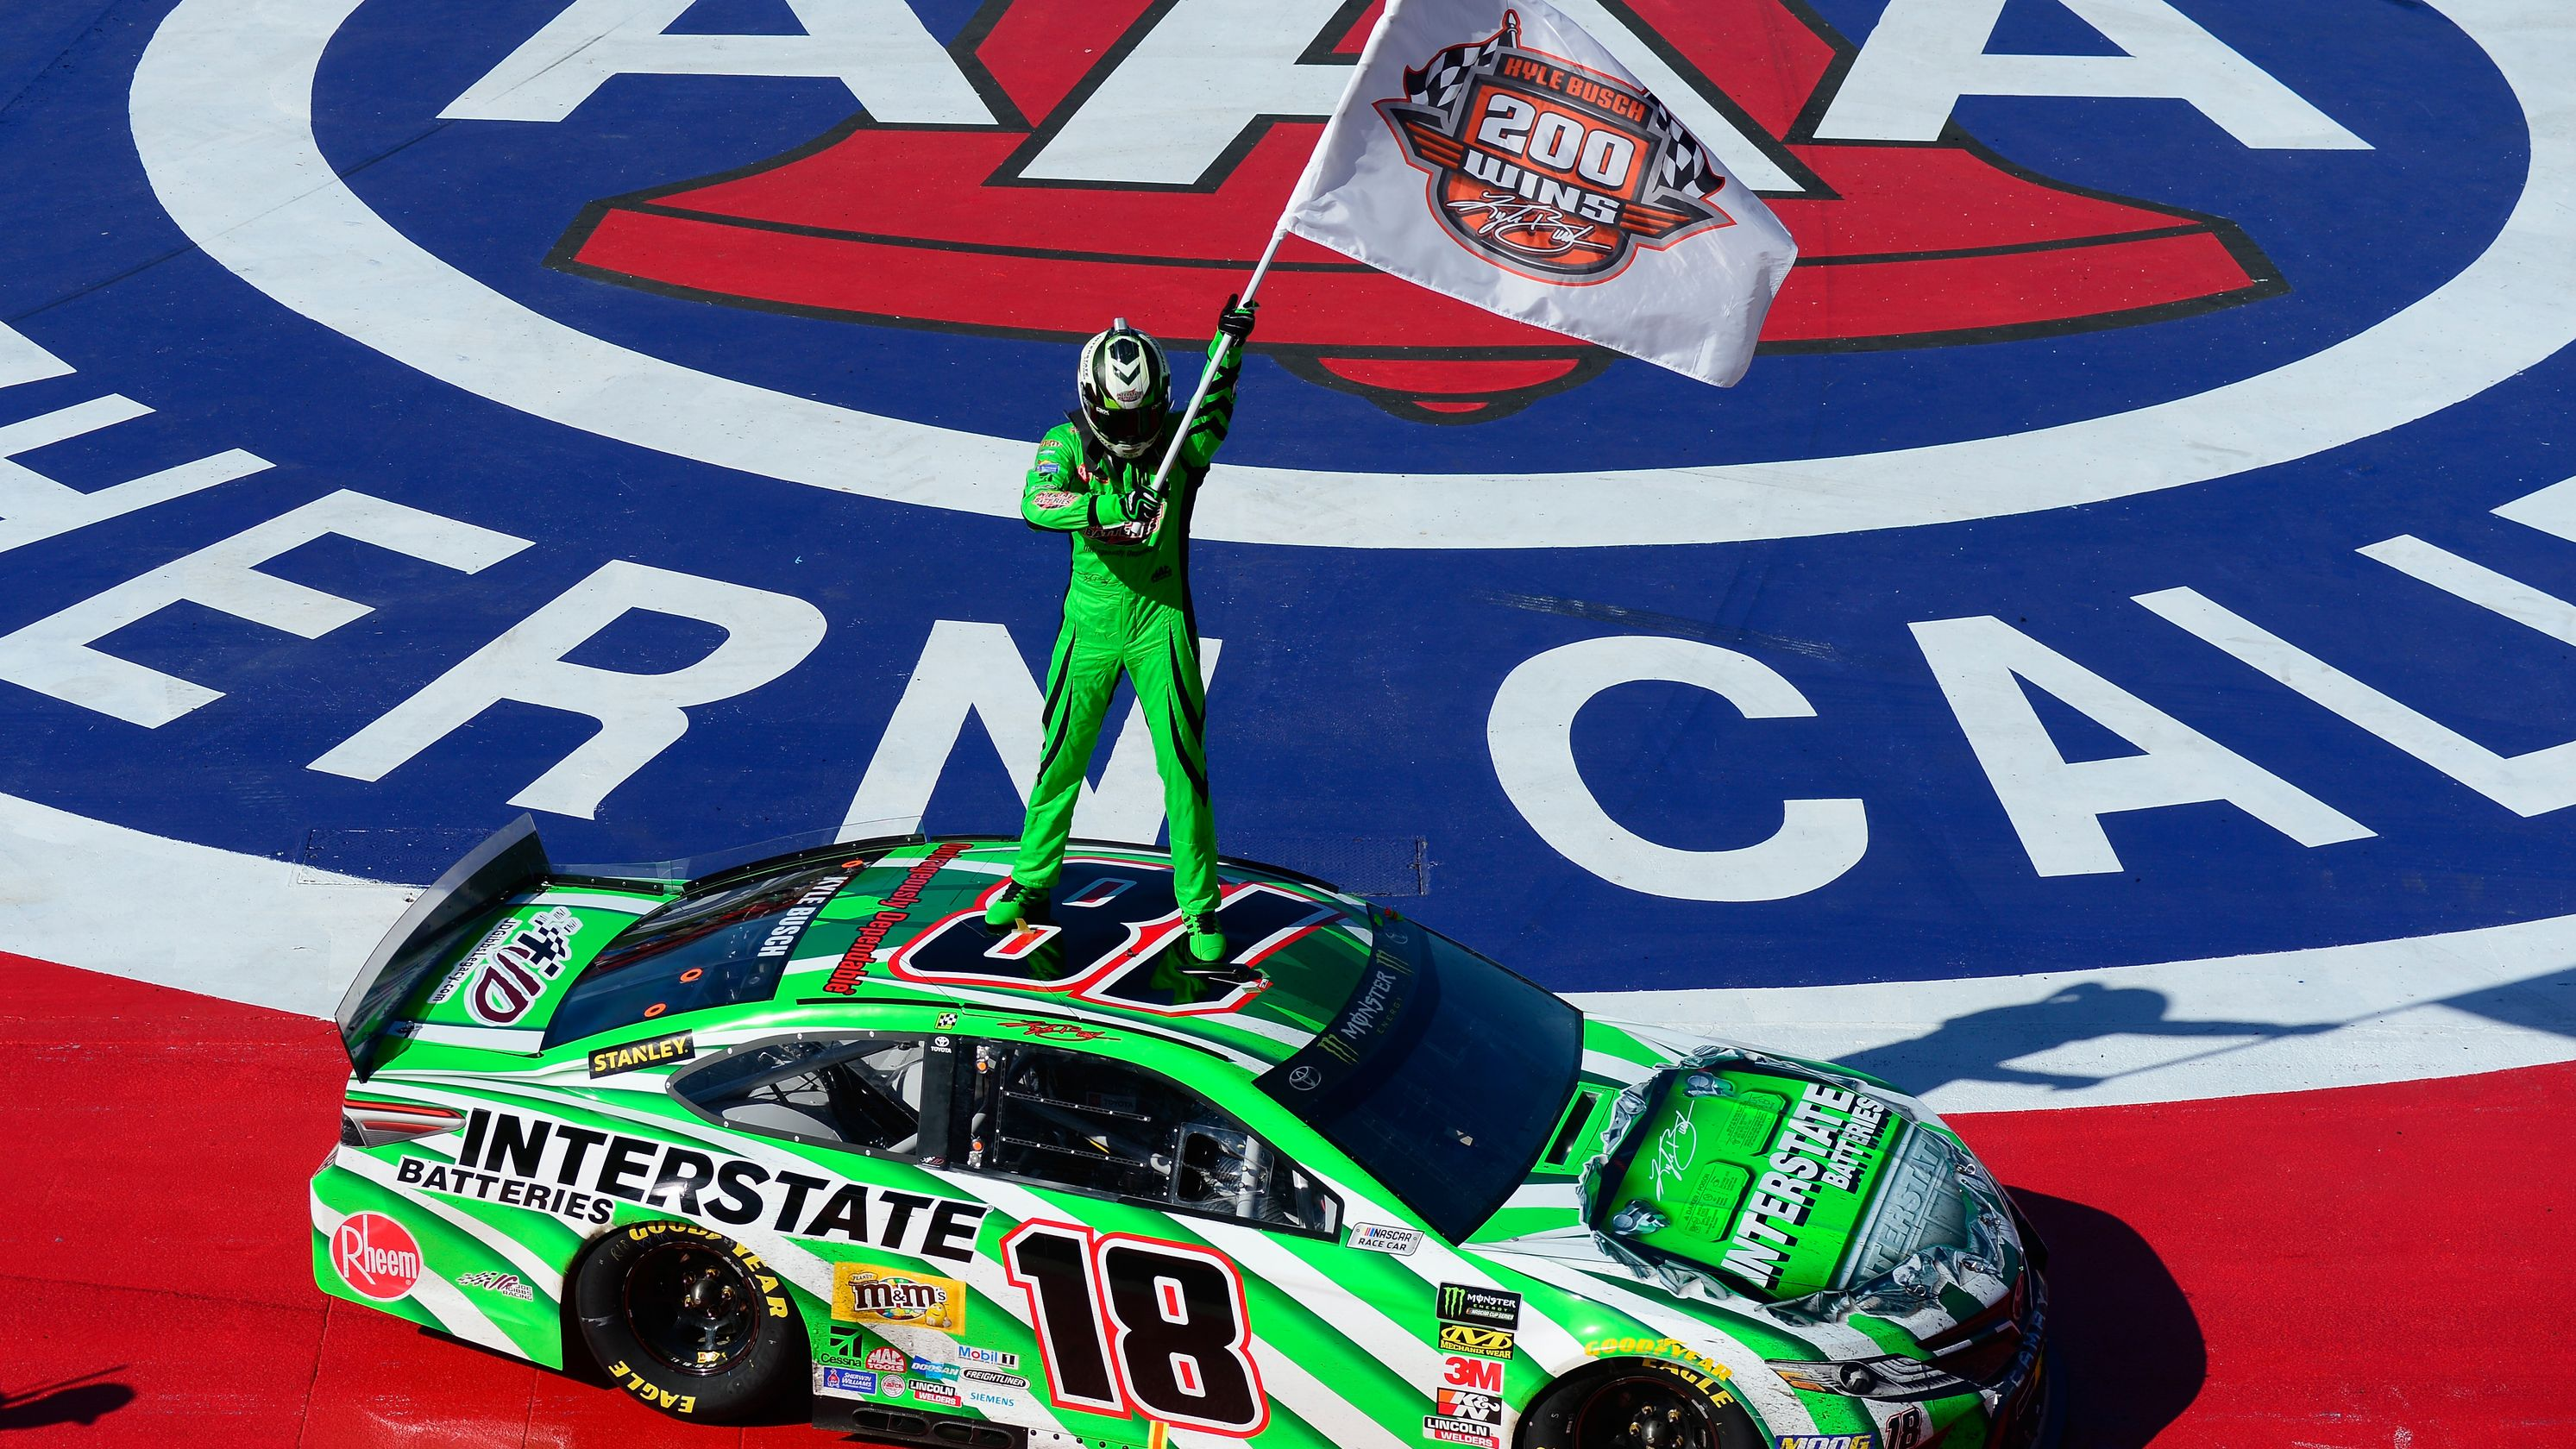 Kyle Busch wins Auto Club 400 for 200th NASCAR victory